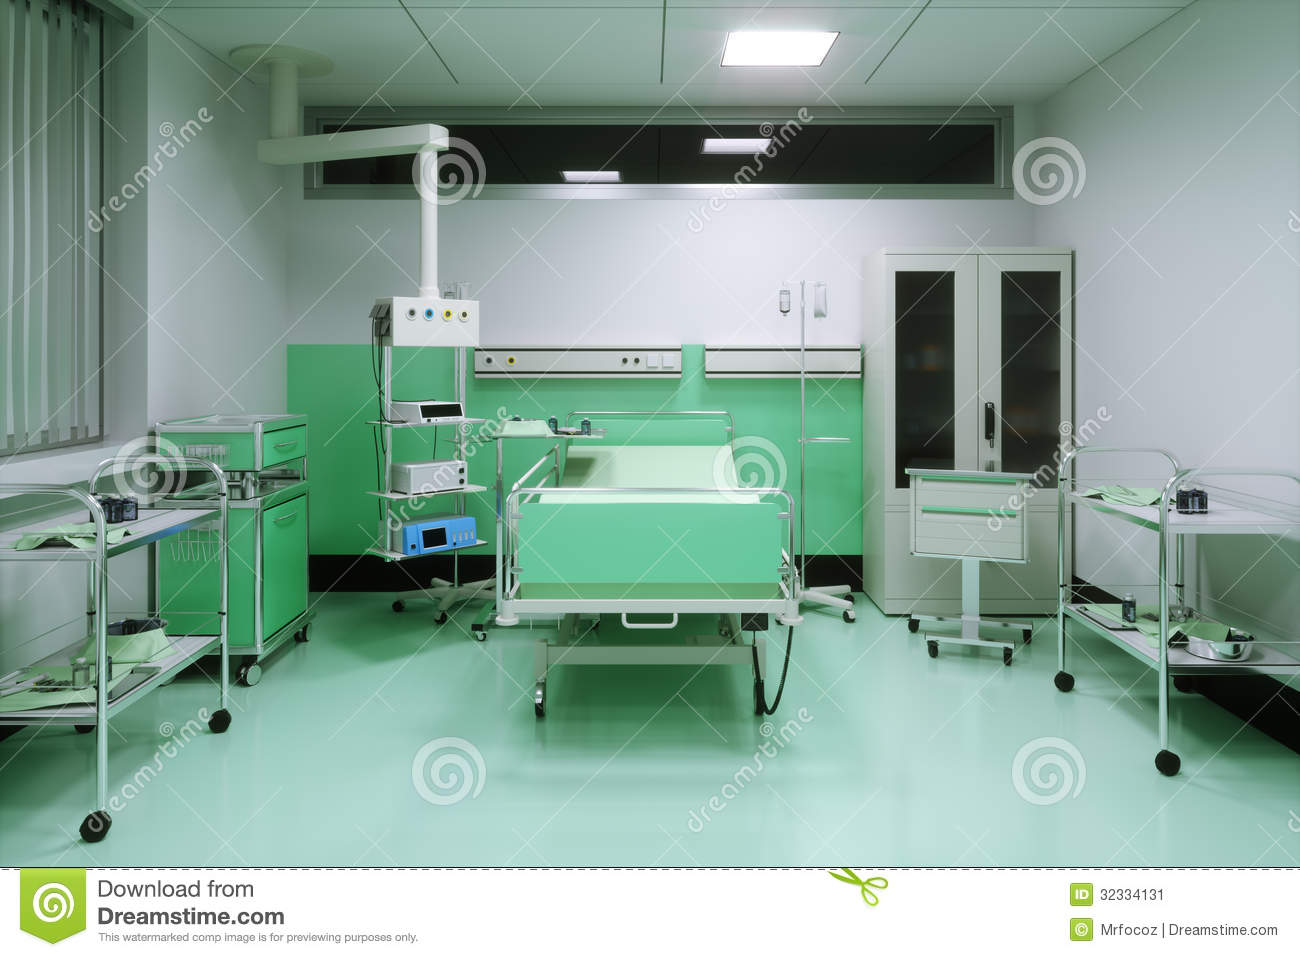 Hospital room pictures from bed view - Empty Bed In A Hospital Room Stock Image